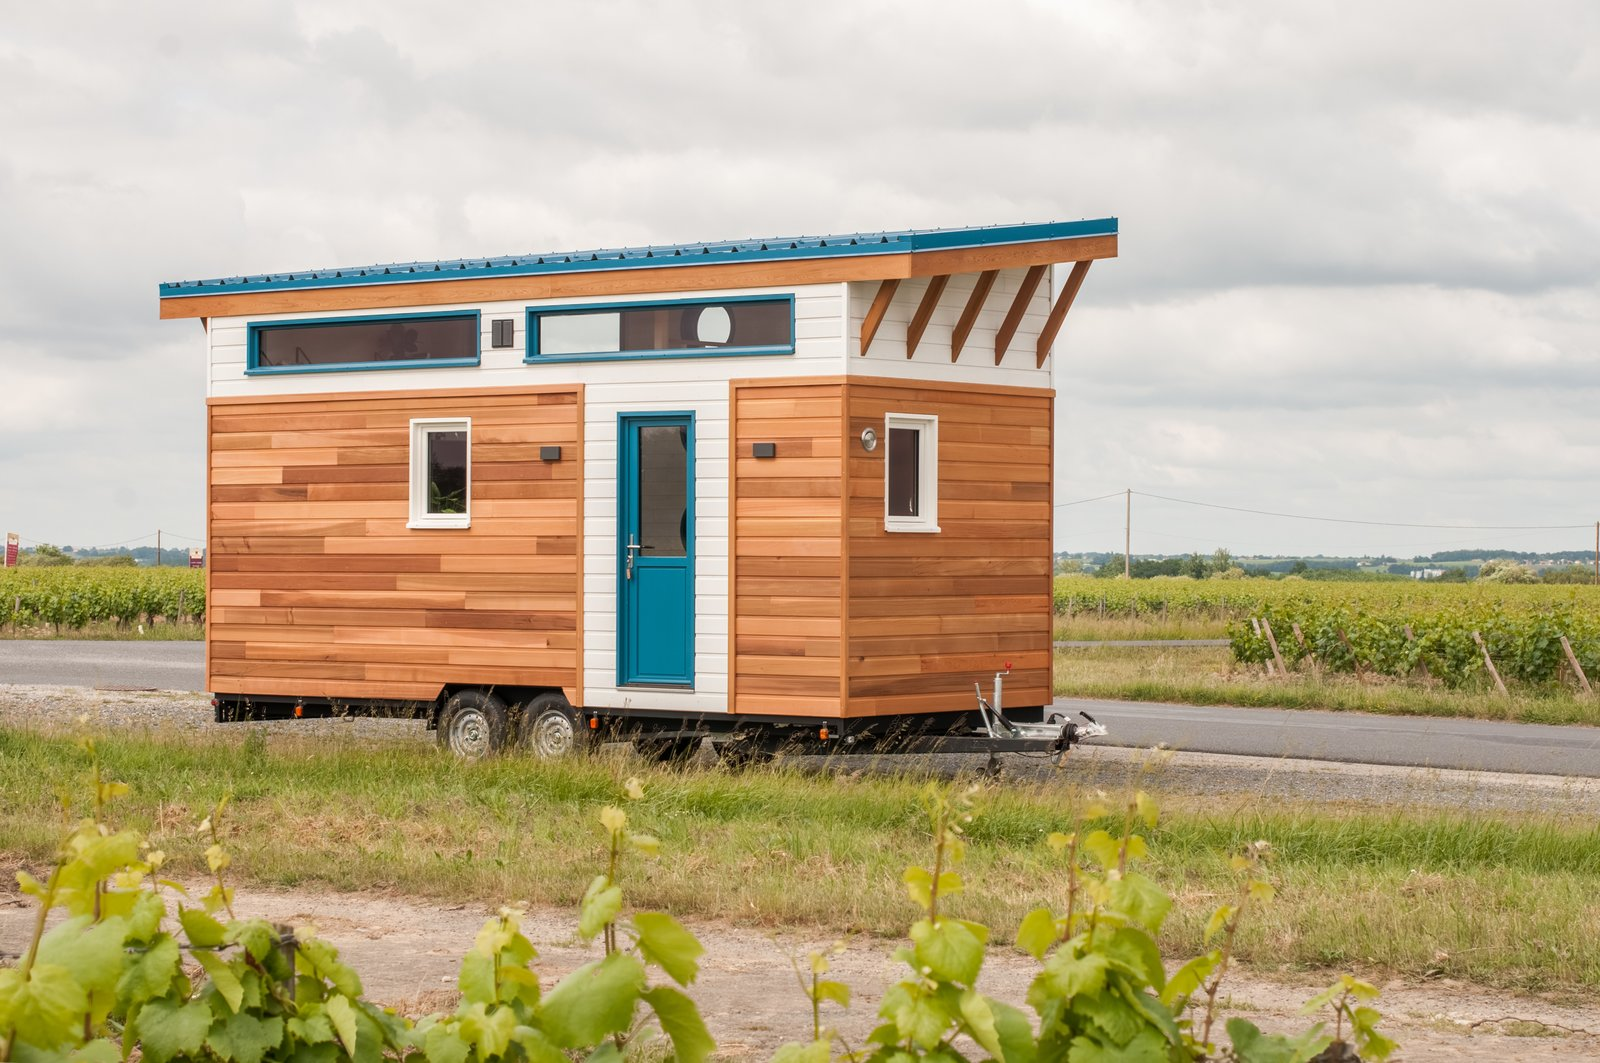 Articles about potential van bos one square meter house on Dwell.com